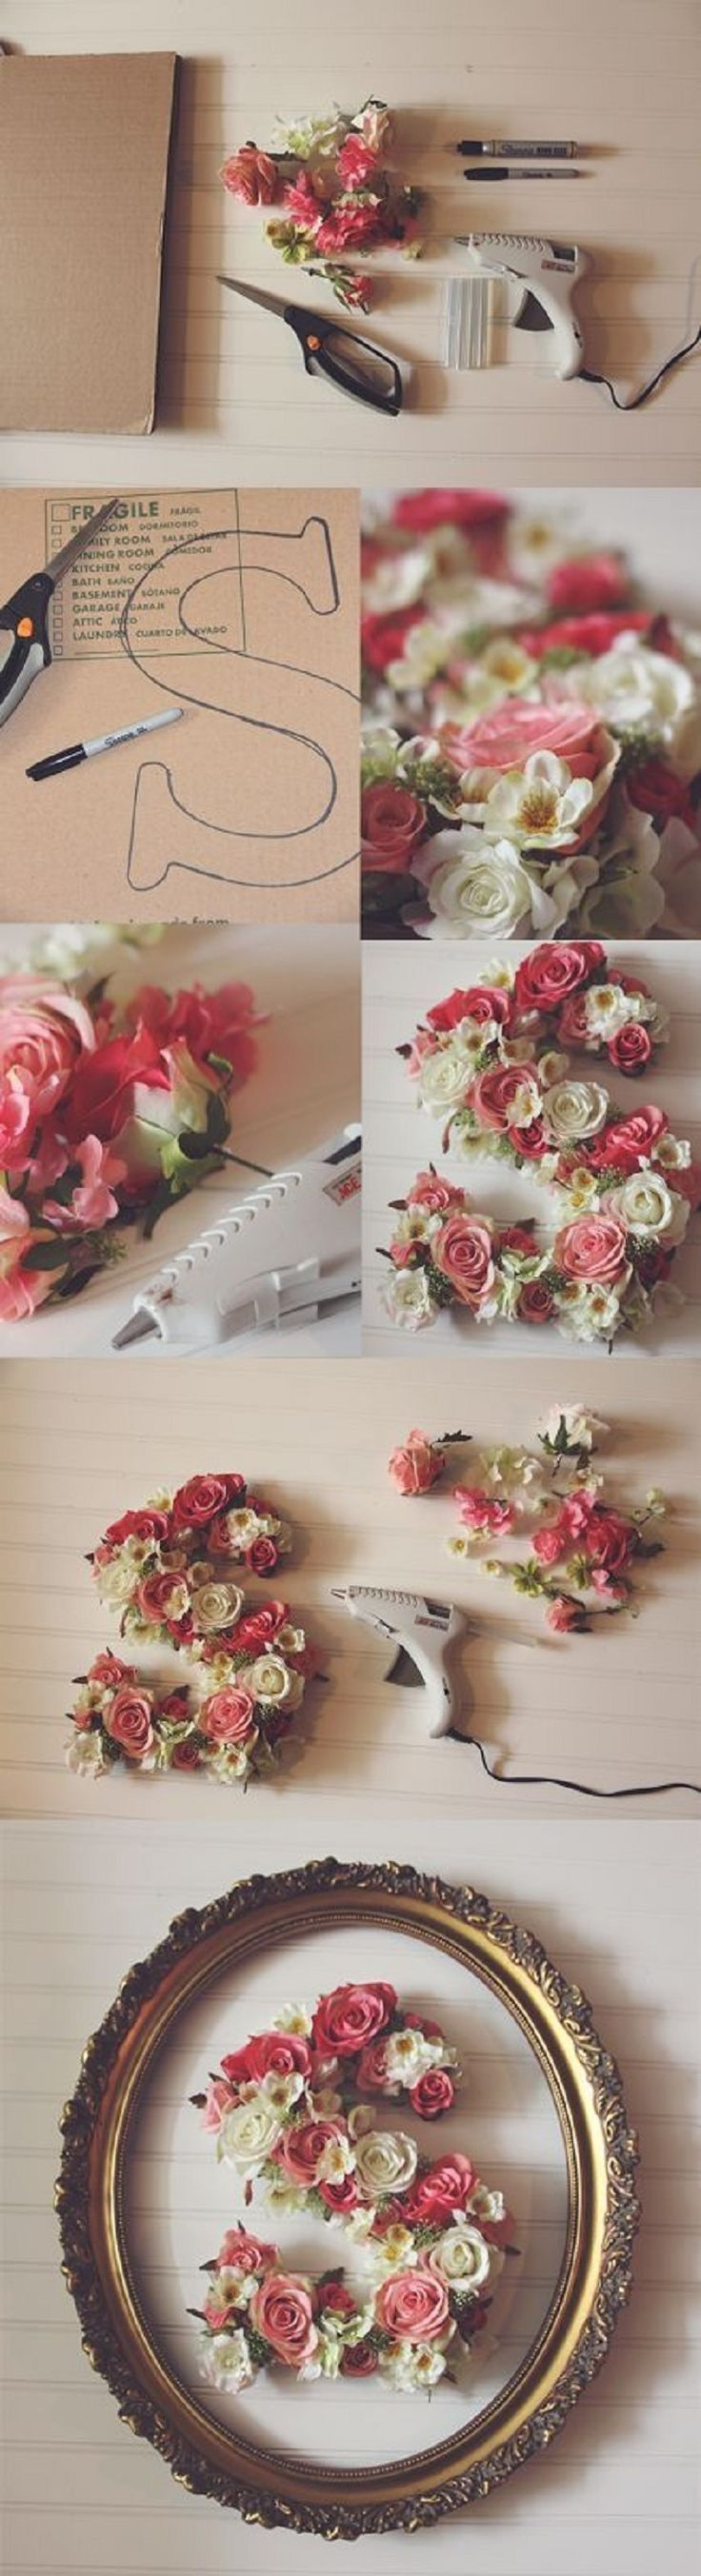 The link was broken. Take dollar store flowers and hot glue them to cardboard letter cutouts. Spring Flowers DIY home project